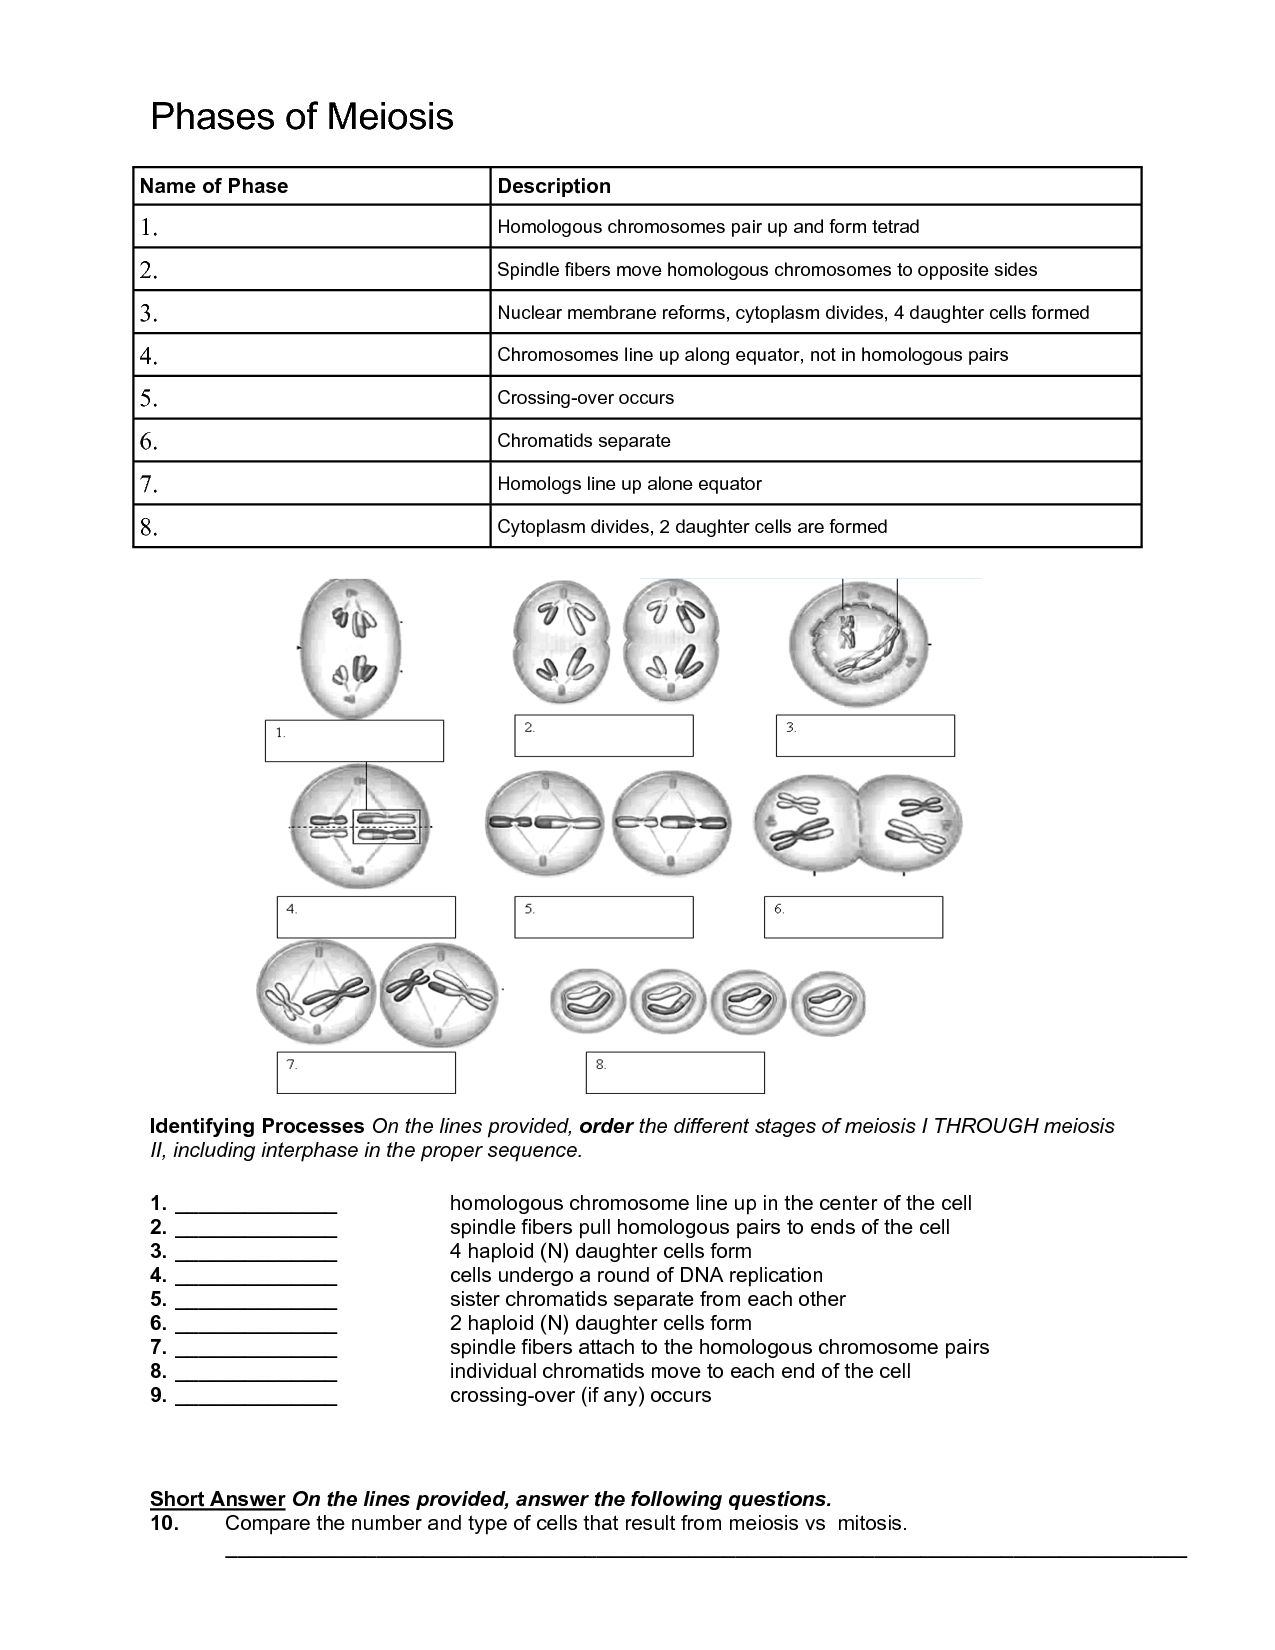 Image Result For Meiosis Stages Worksheet